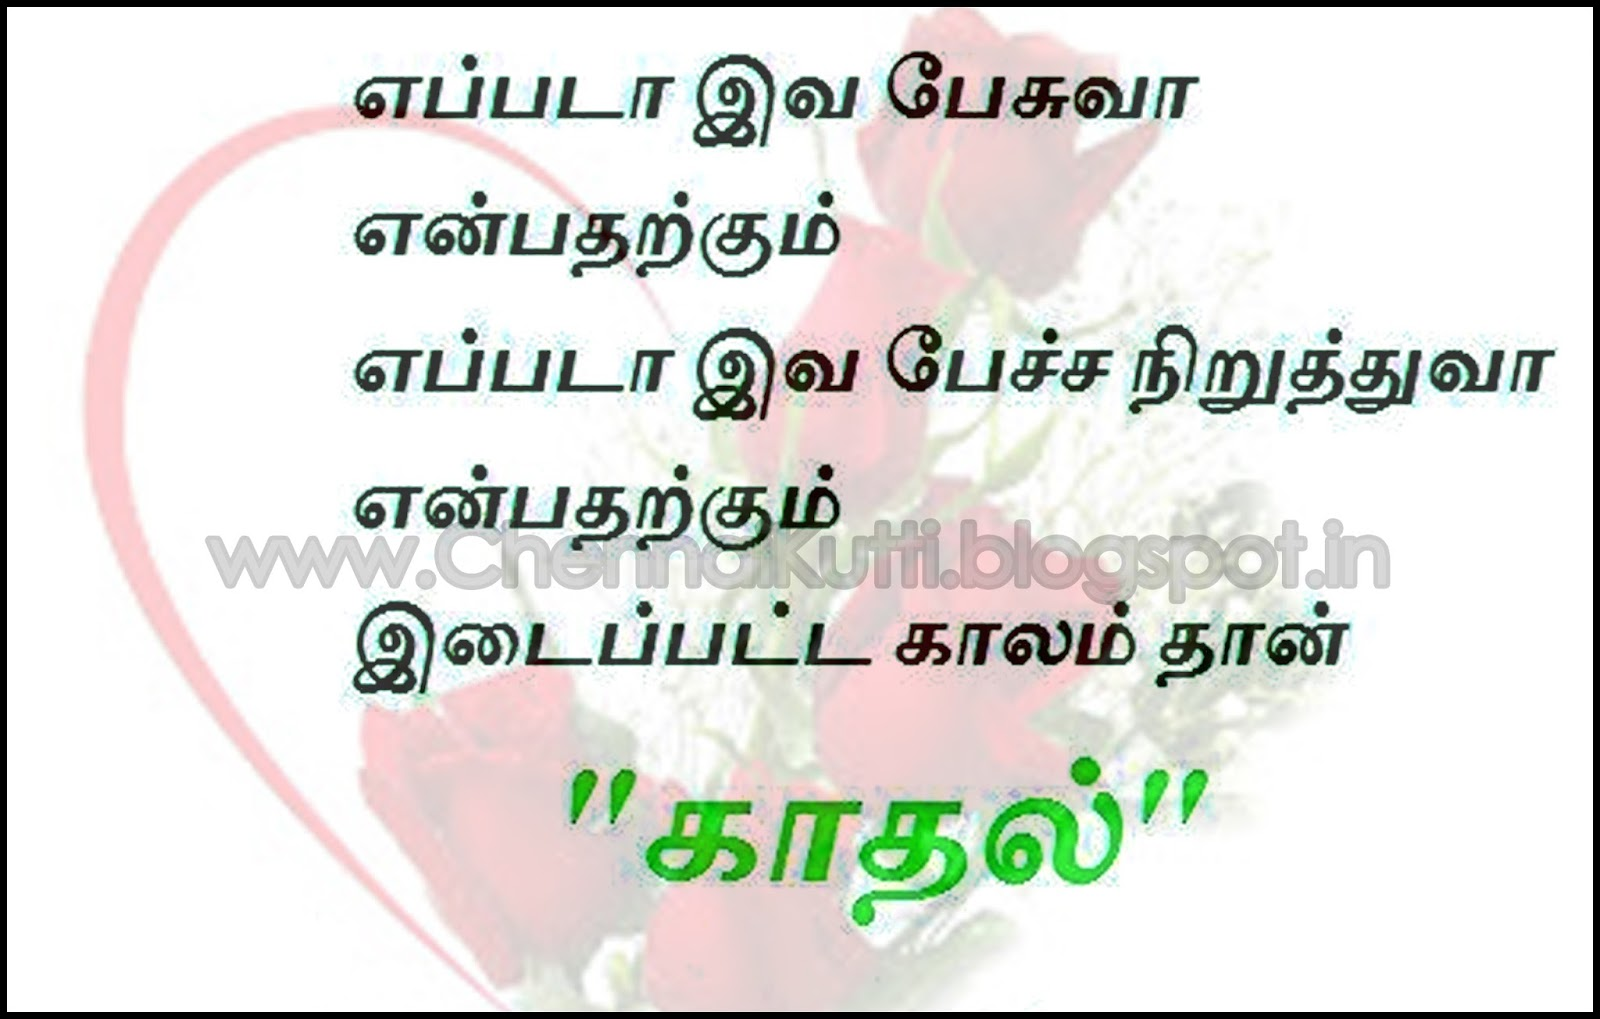 Love Quotes In Tamil Language And Images Www Chennaikutti Com